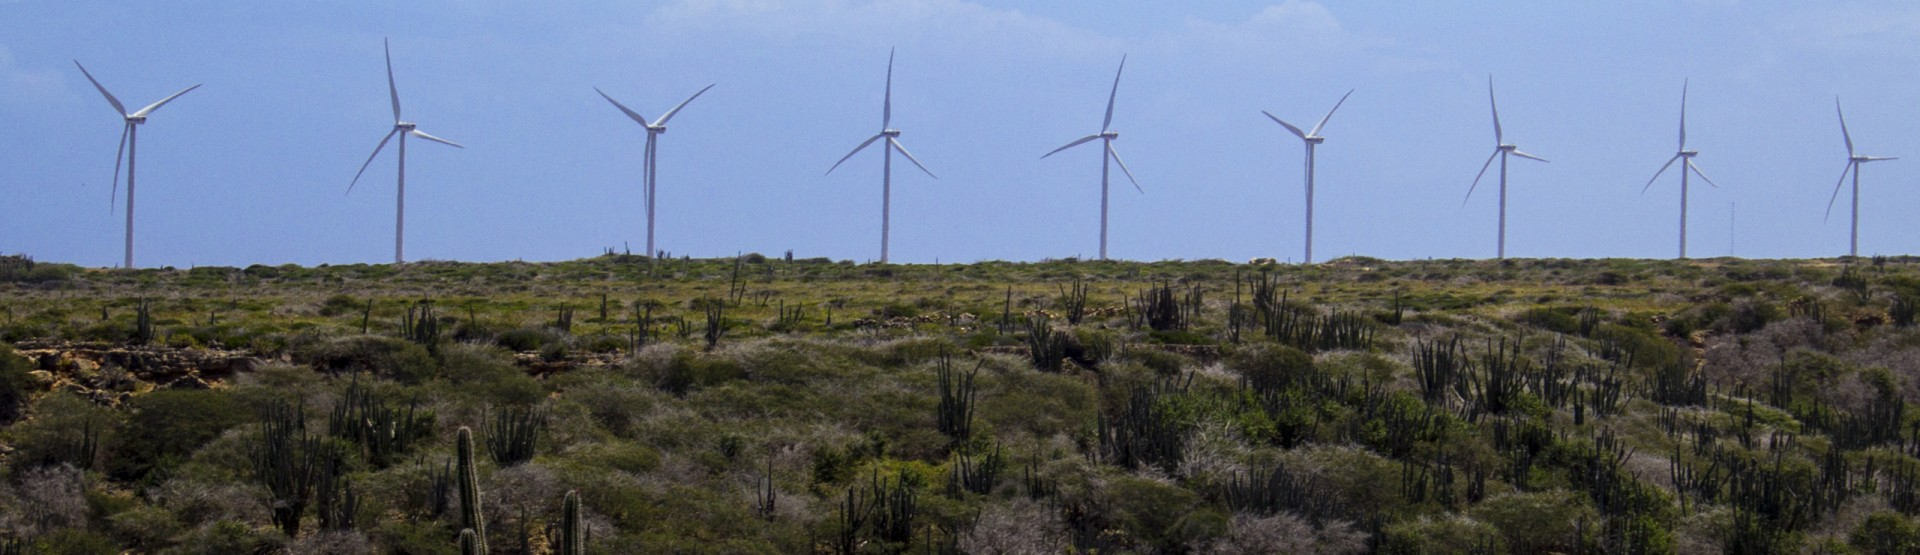 Windmill_Farm_Aruba_2560x740